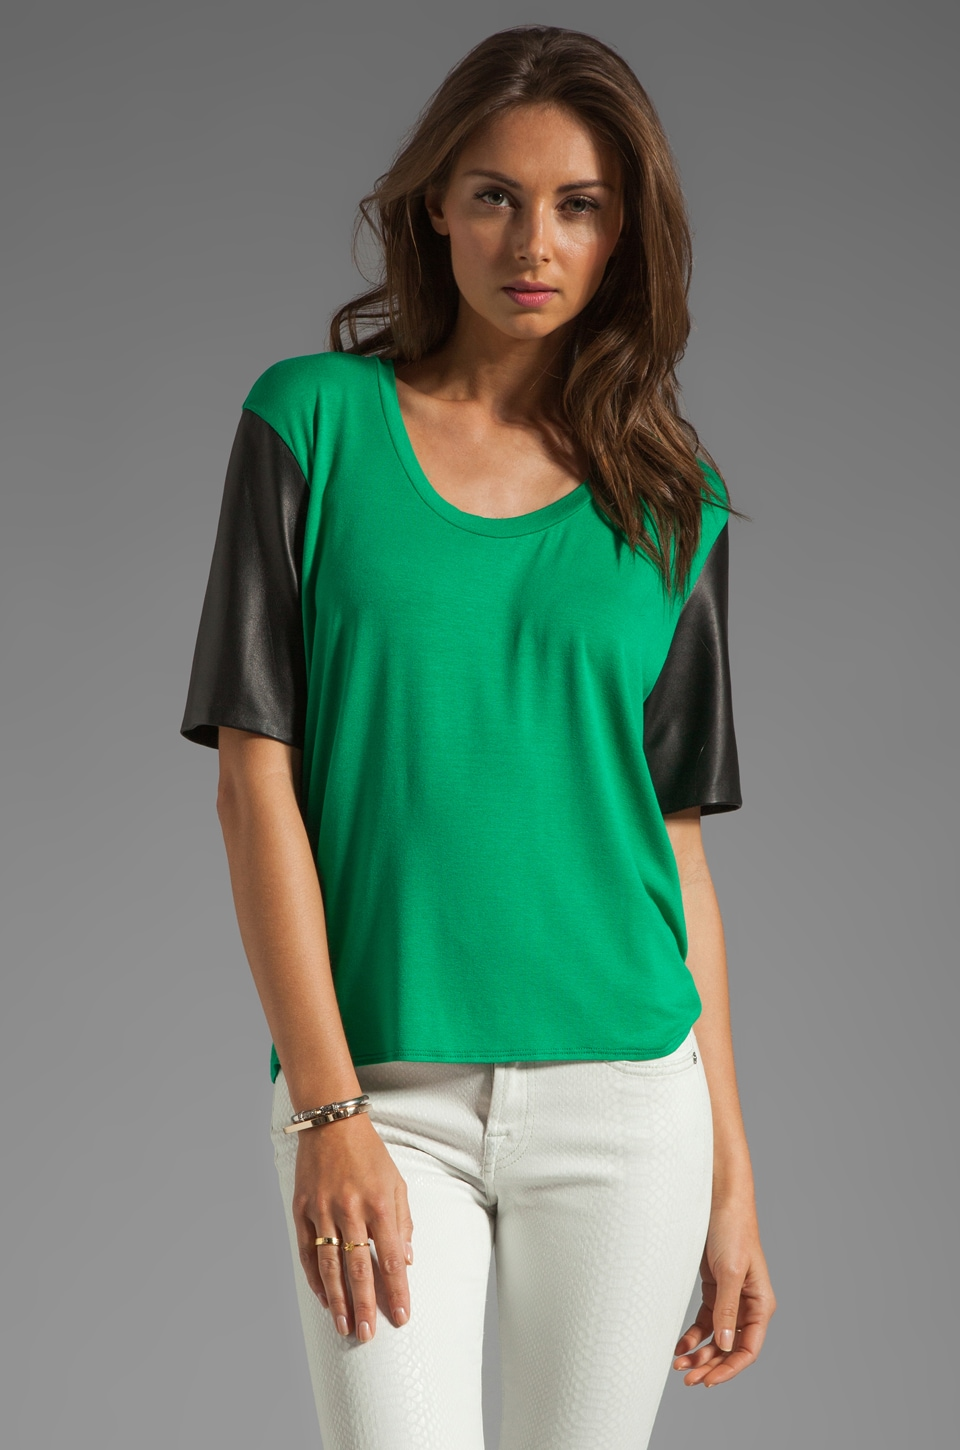 Mason by Michelle Mason Leather Sleeve Tee in Green